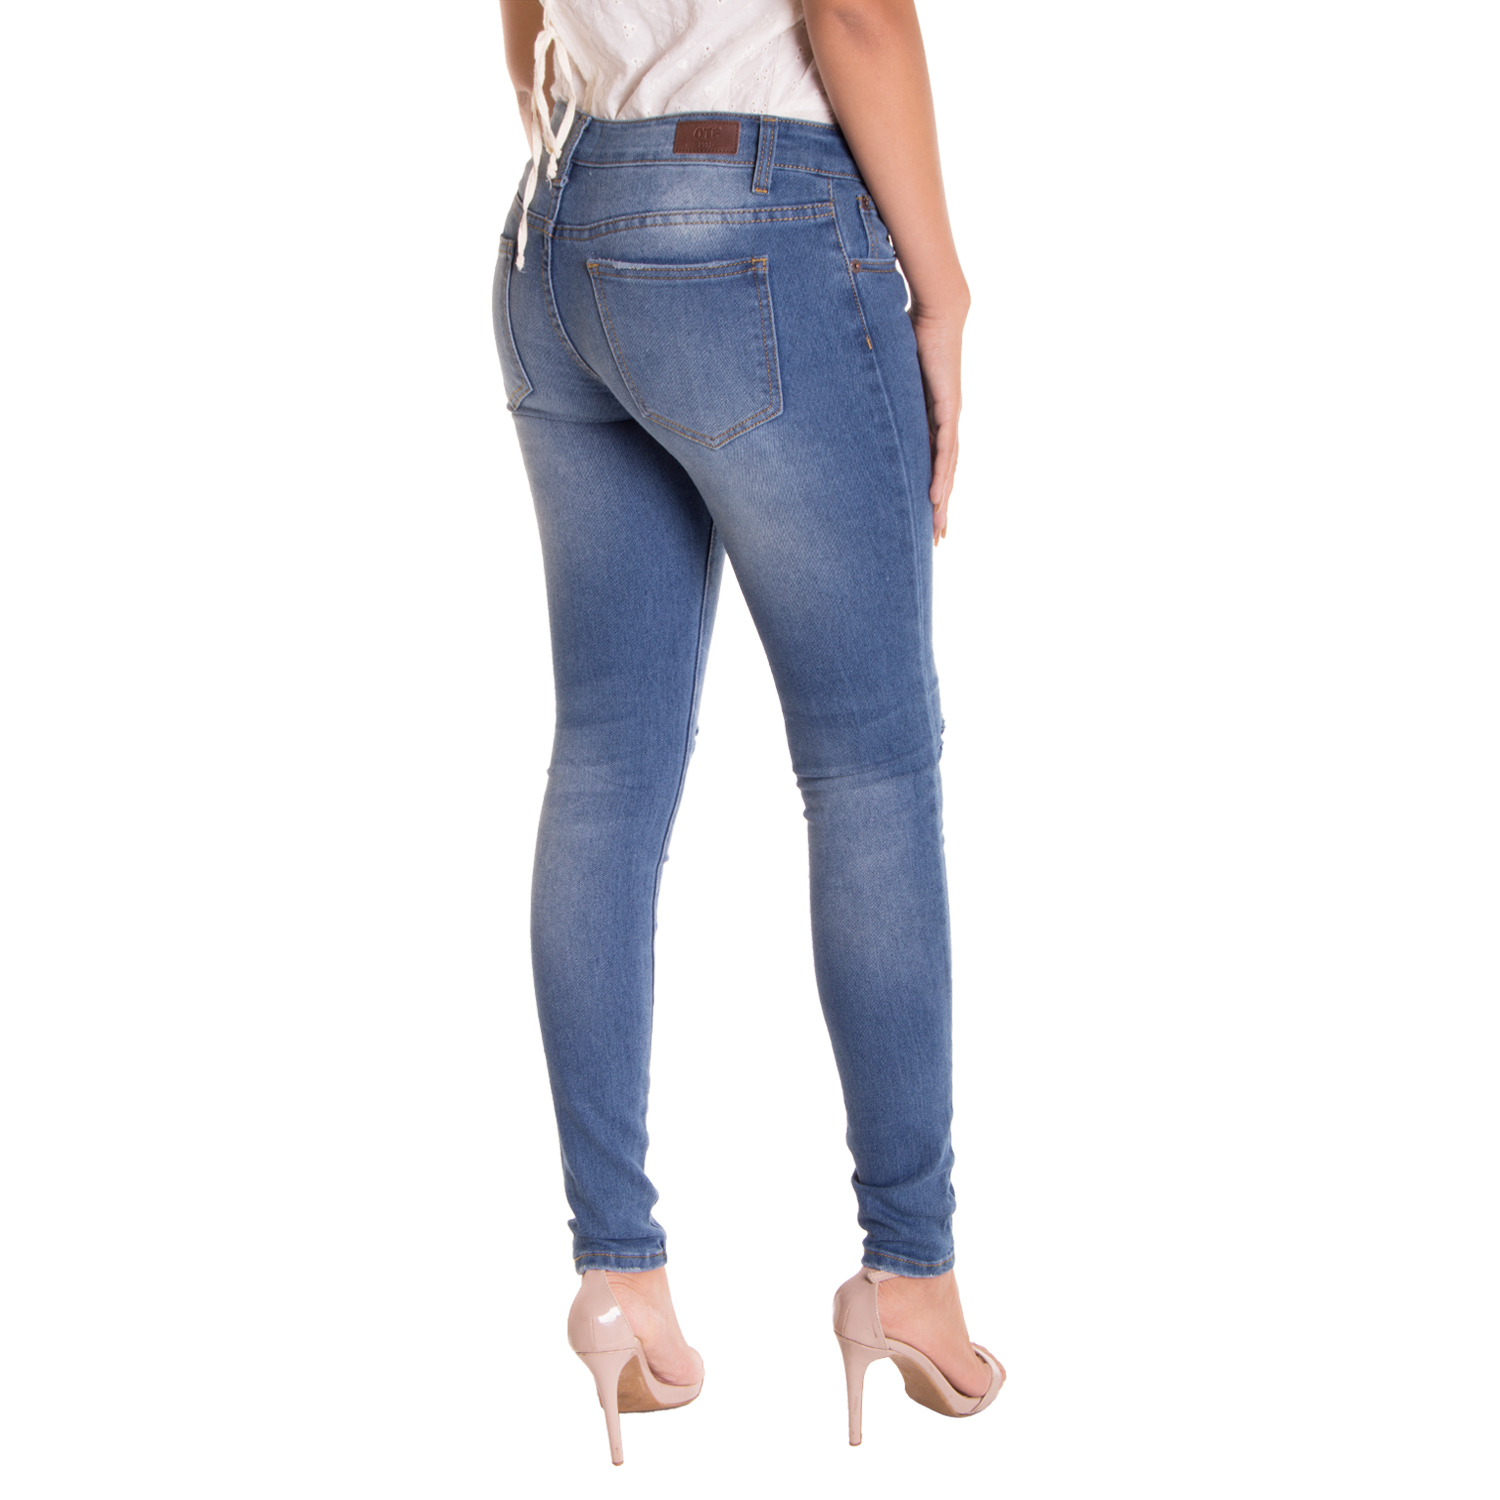 Affordable Designer Jeans are arguably Australia's largest eBay seller of jeans for men and women. We source the best designer jeans at CHEAP PRICES, so we .